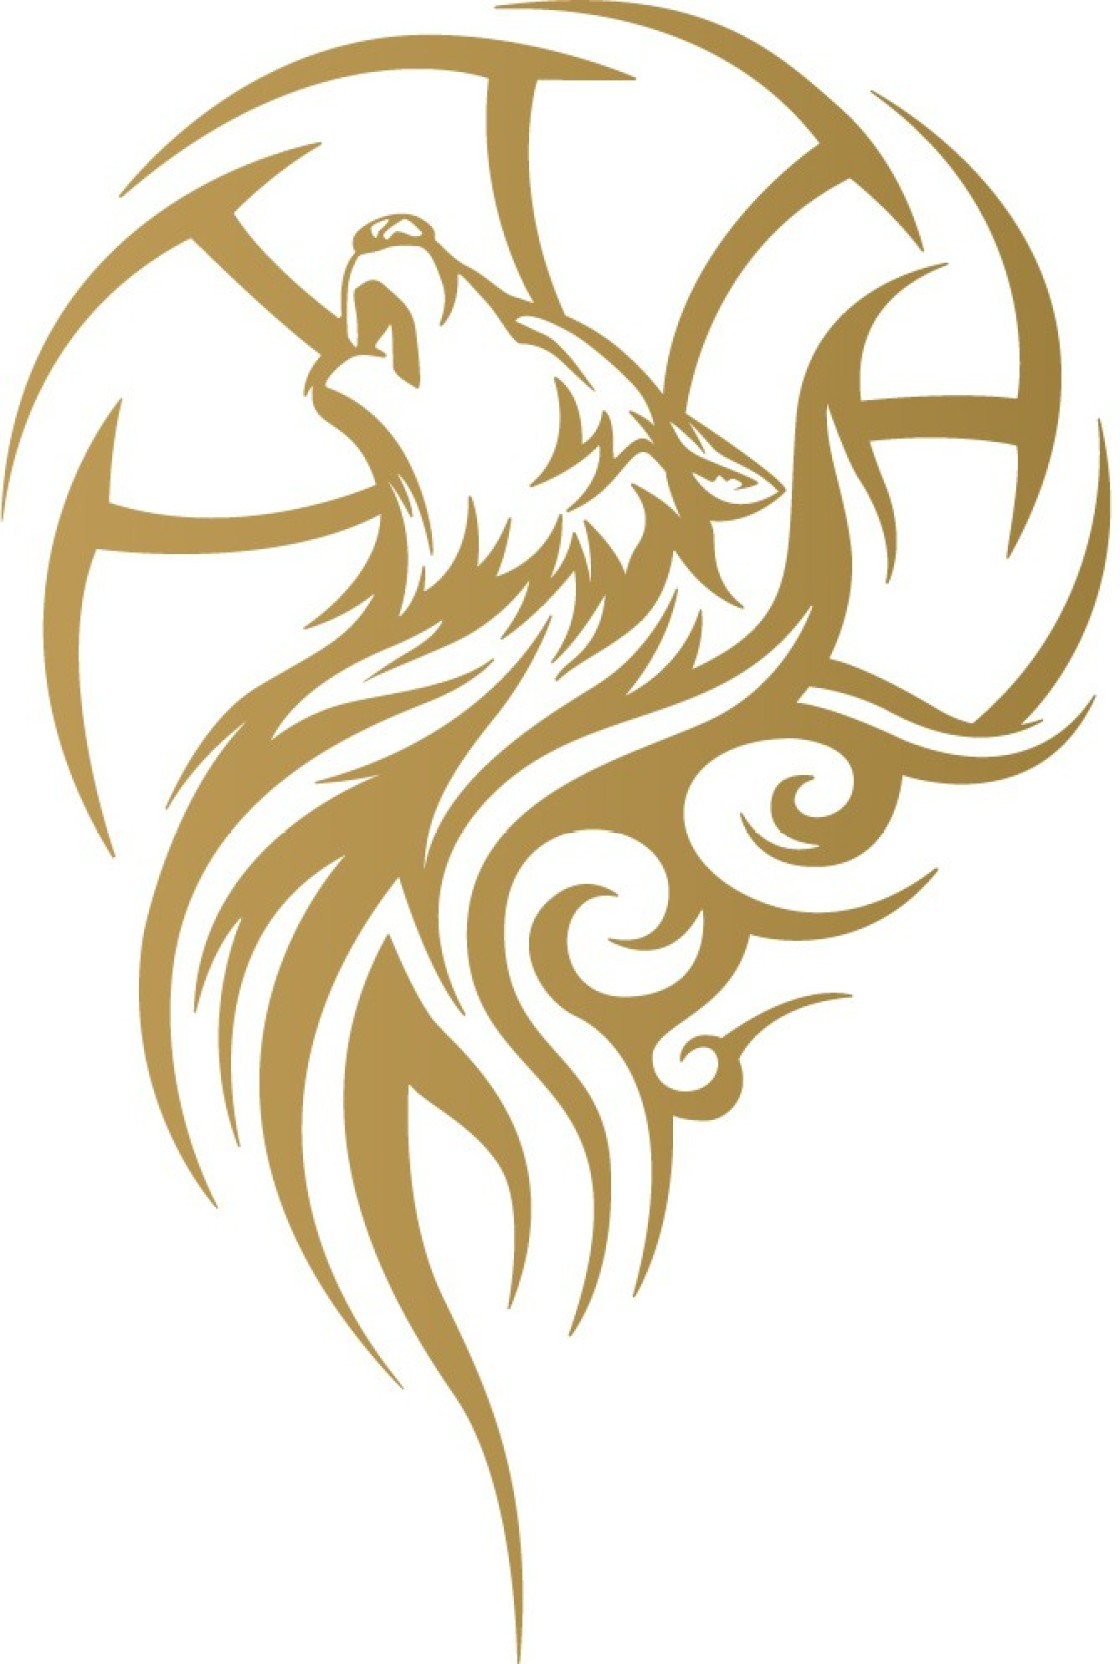 Wall design sports stickers for bikes wolf tattoo gold colour reflective vinyl motorcycle design sticker pack of 1